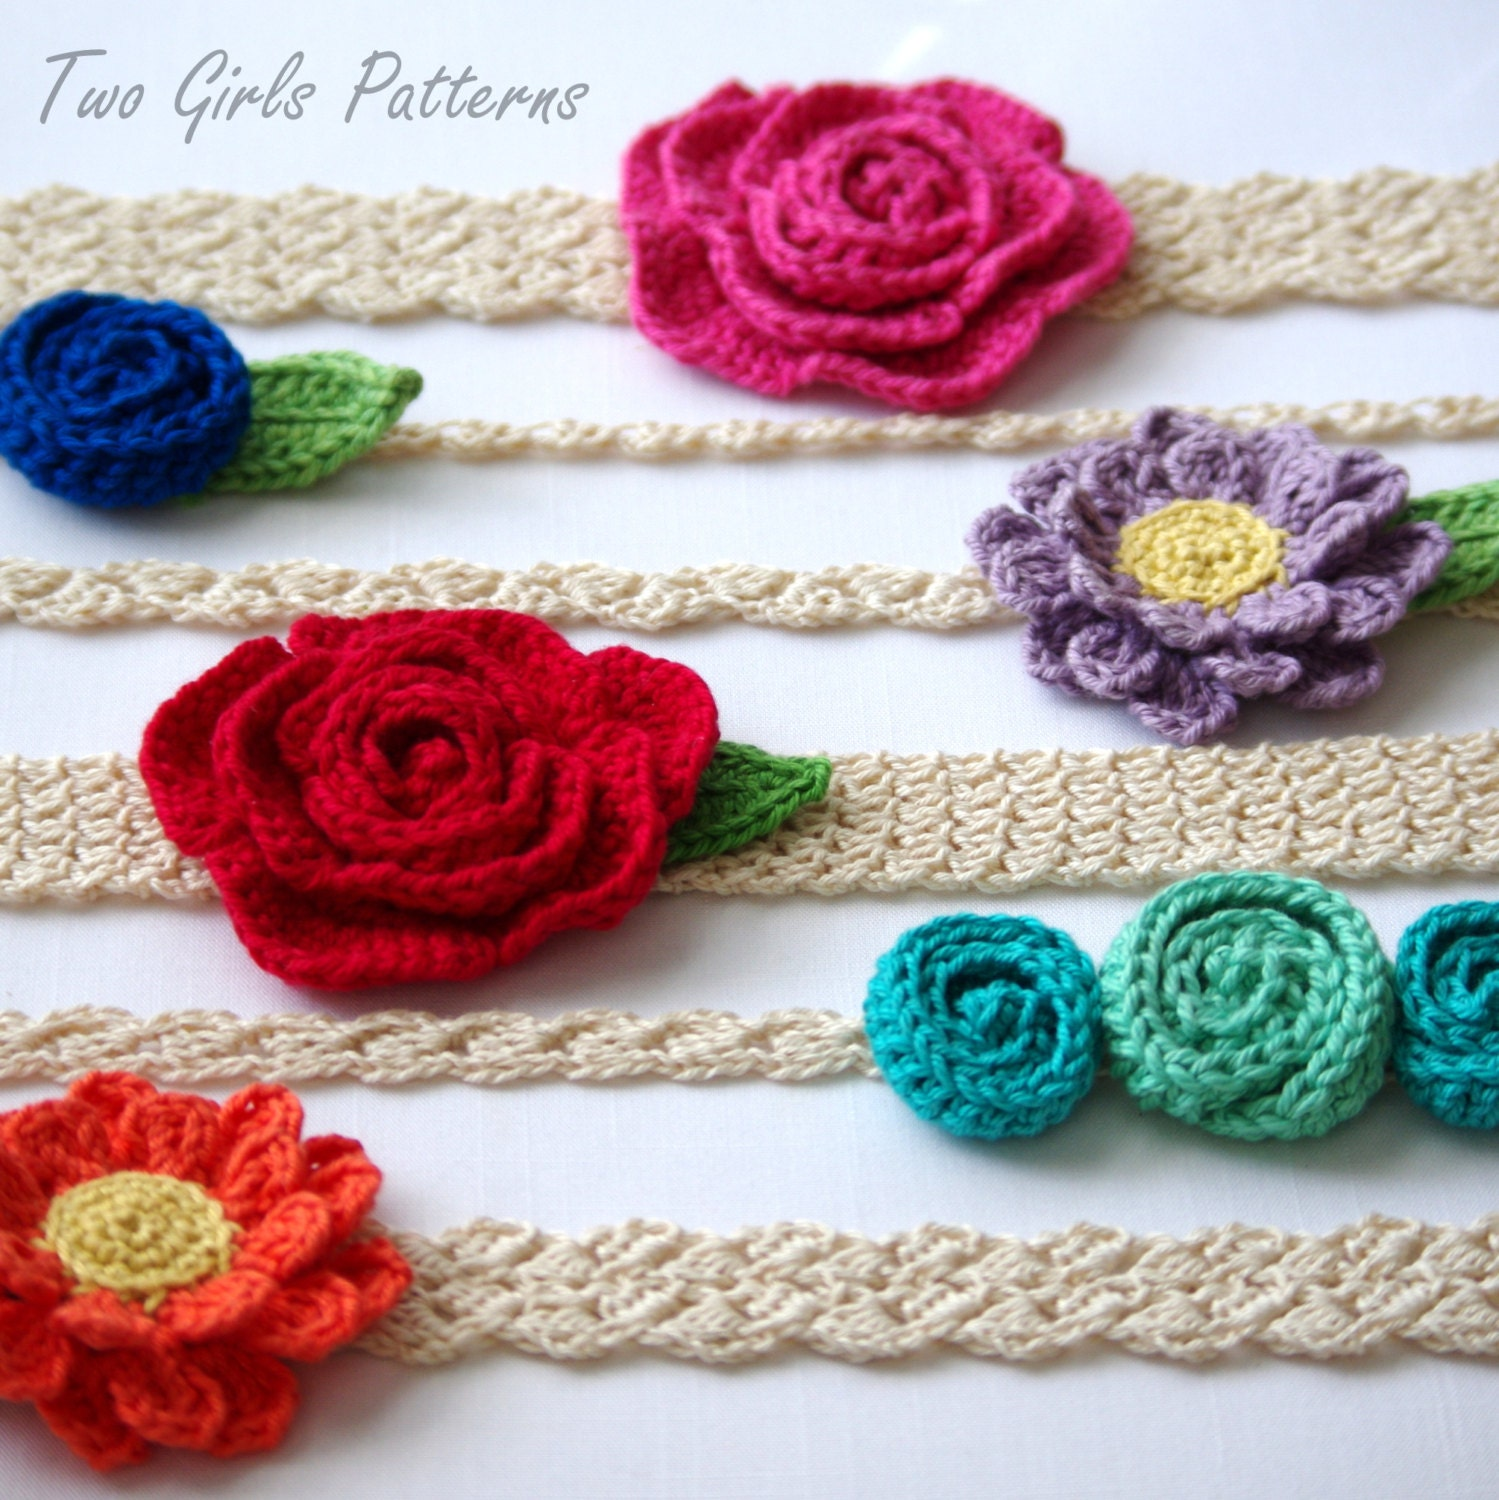 Crochet Flowers Patterns Headbands : CROCHET PATTERN 216 6 headbands and 3 flower patterns